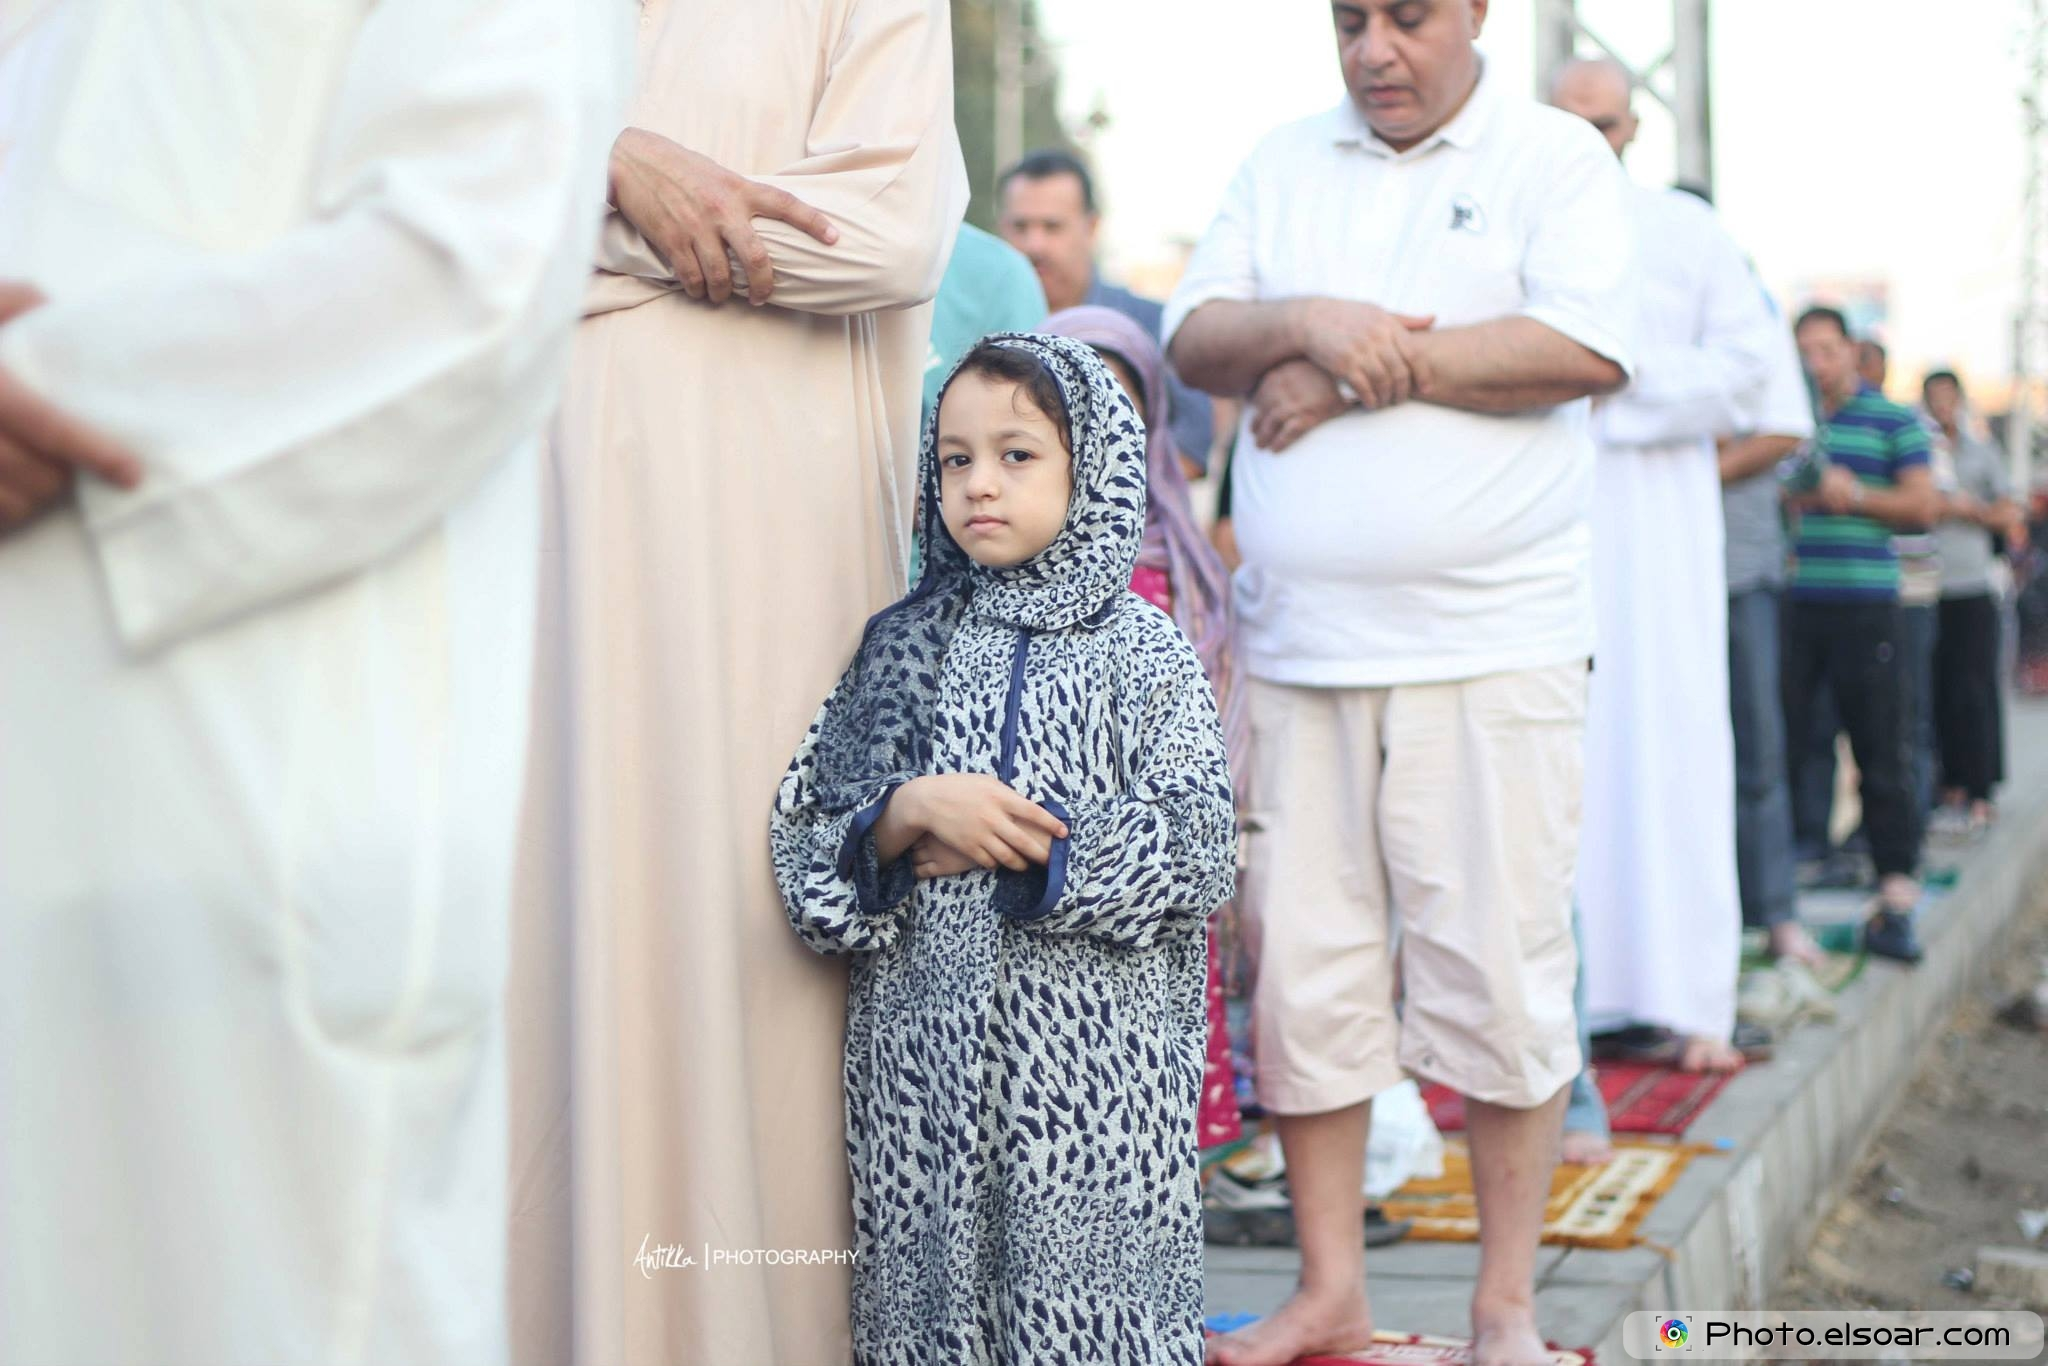 The Eid Prayer At Egypt